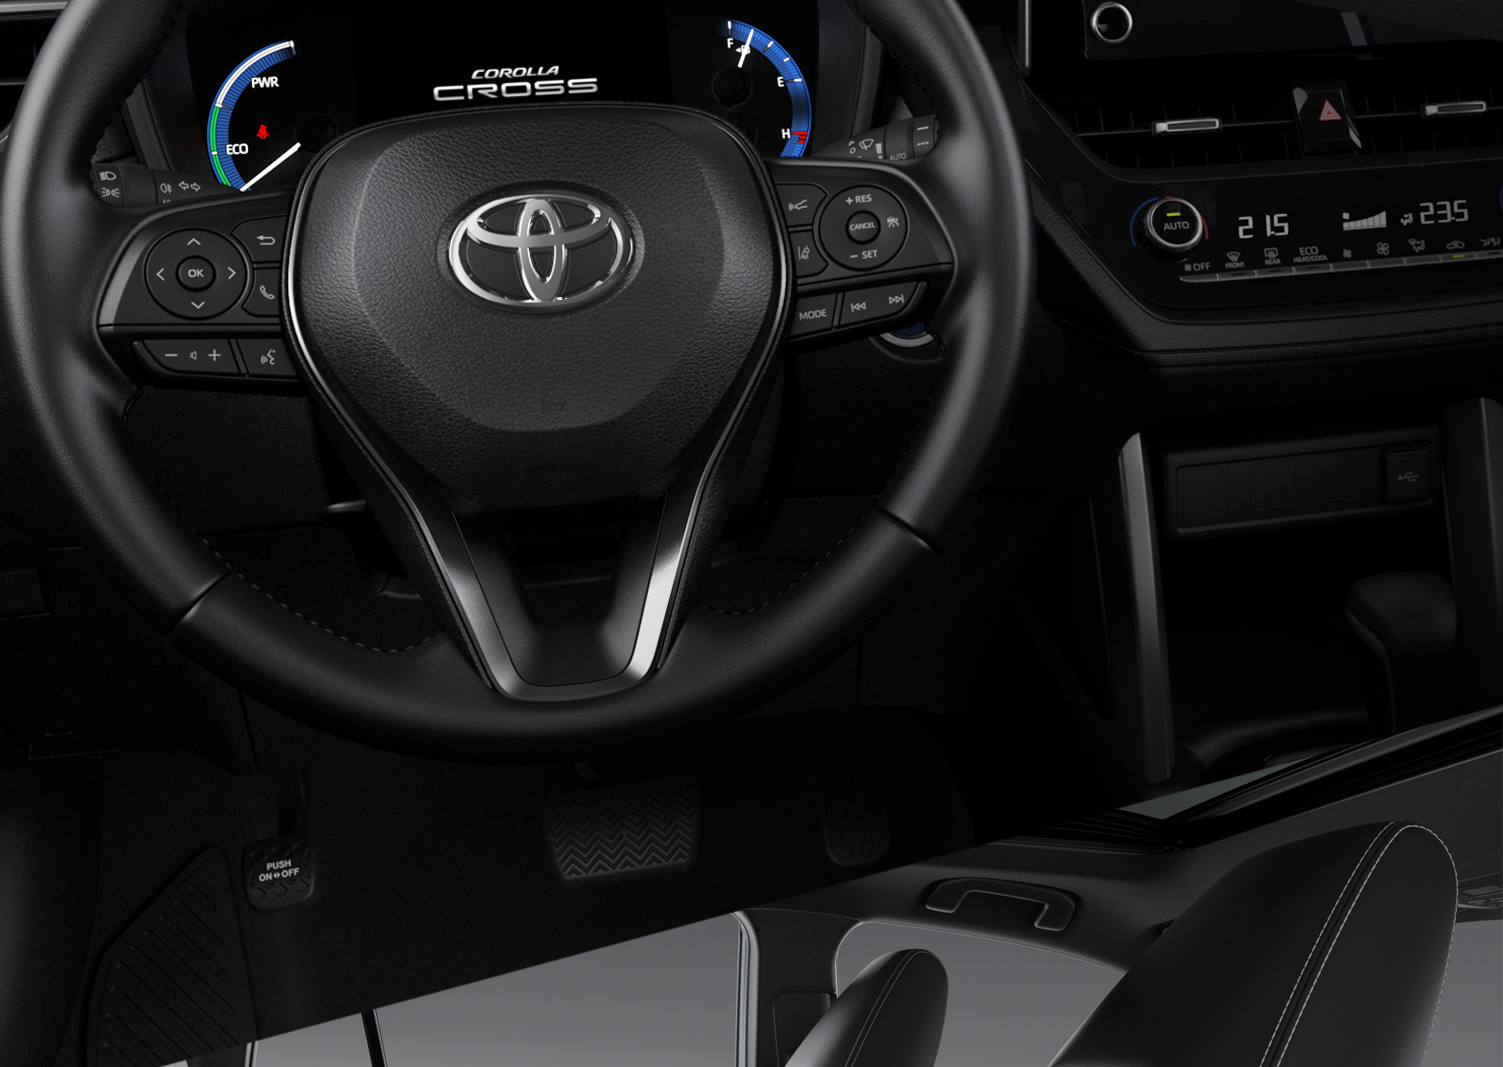 Comfortable steering, and more